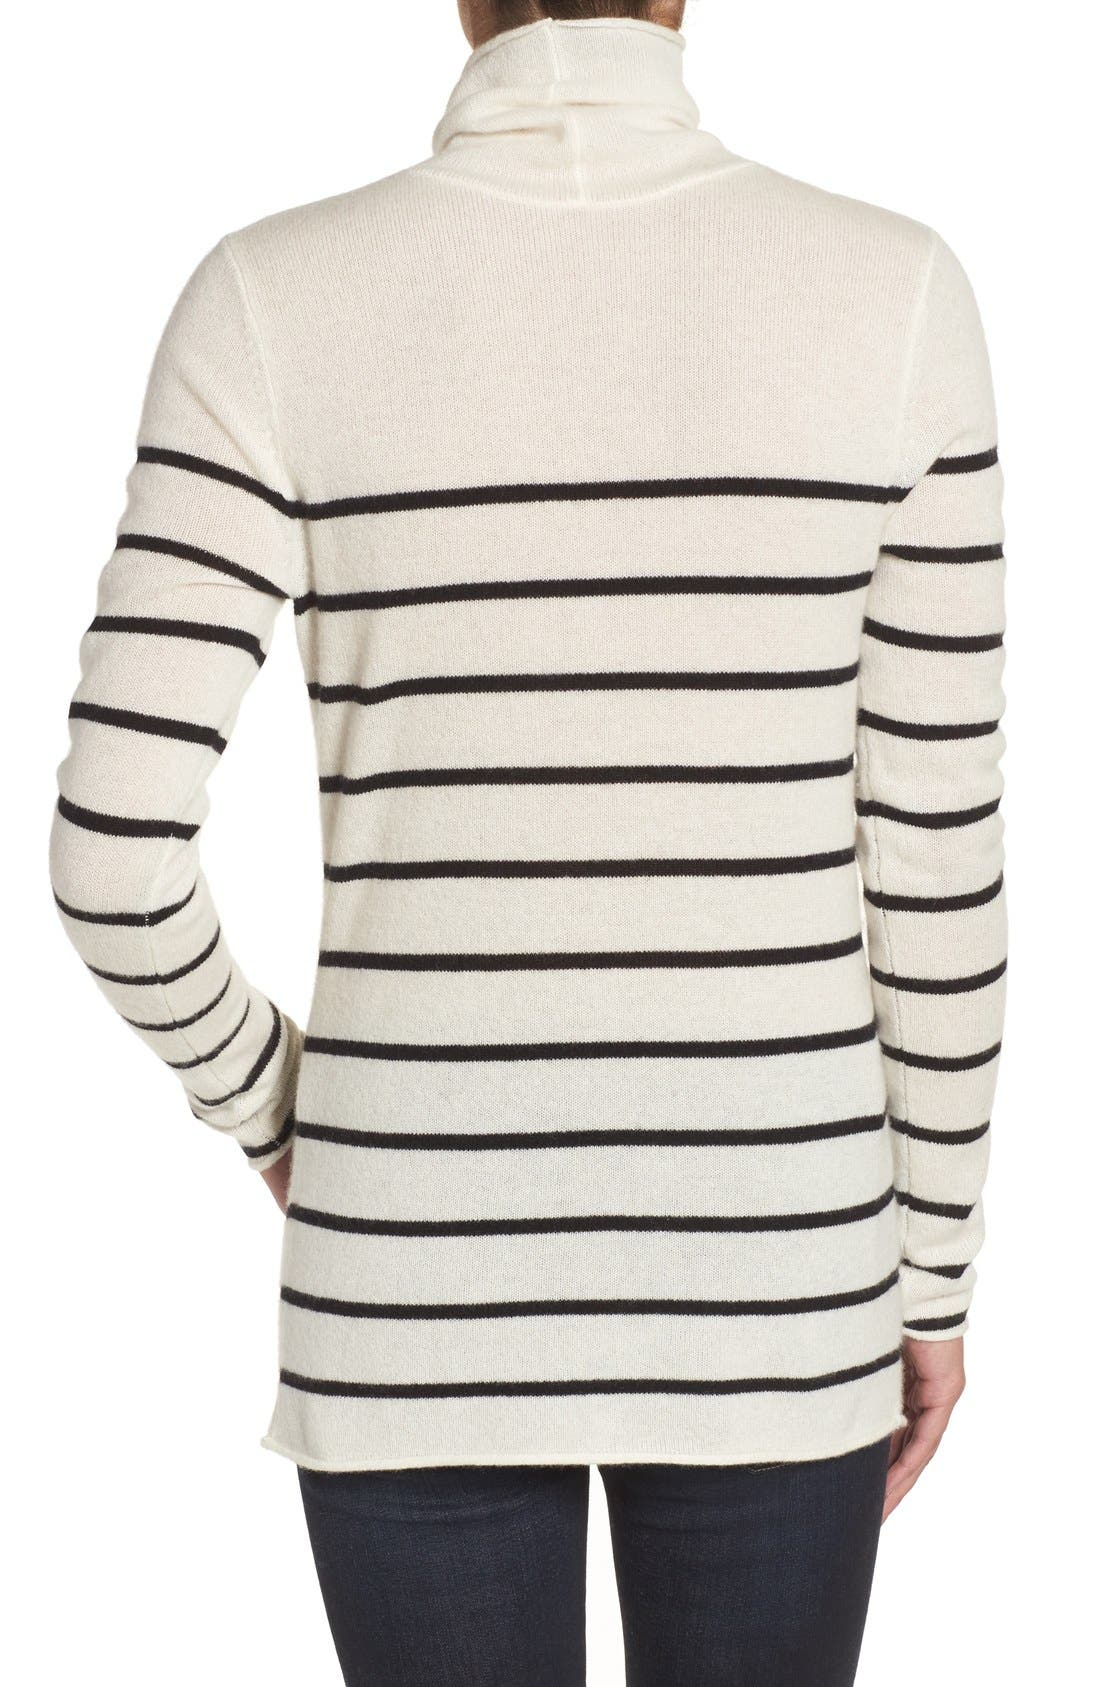 Wool & Cashmere Funnel Neck Sweater,                             Alternate thumbnail 2, color,                             Ivory- Black Stripe